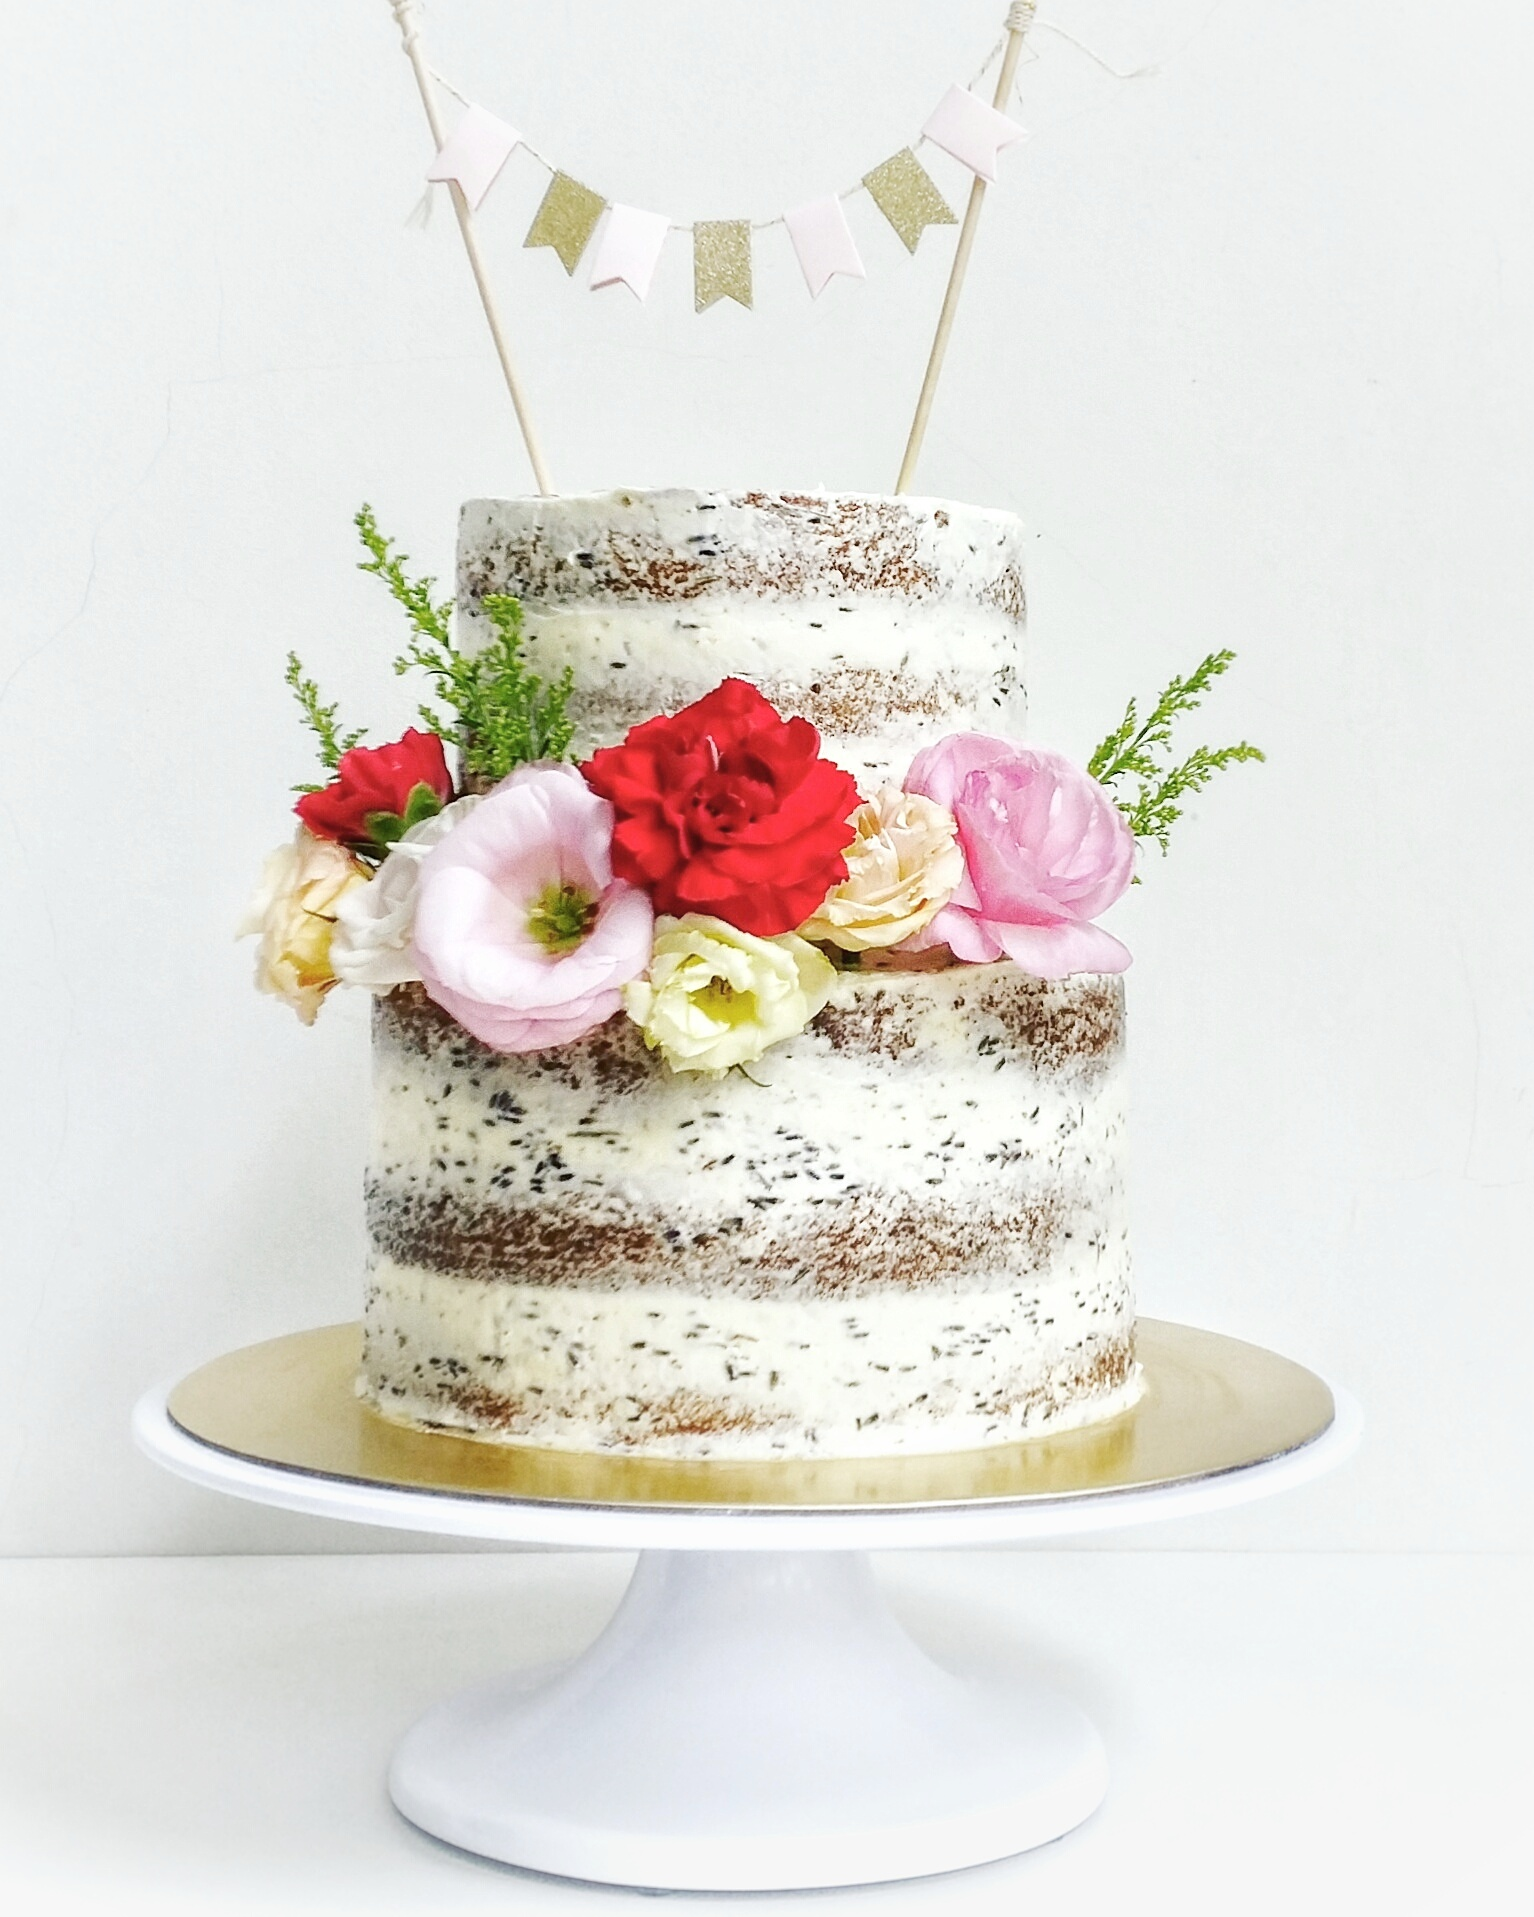 Chocolate Lavender Earl Grey Cake